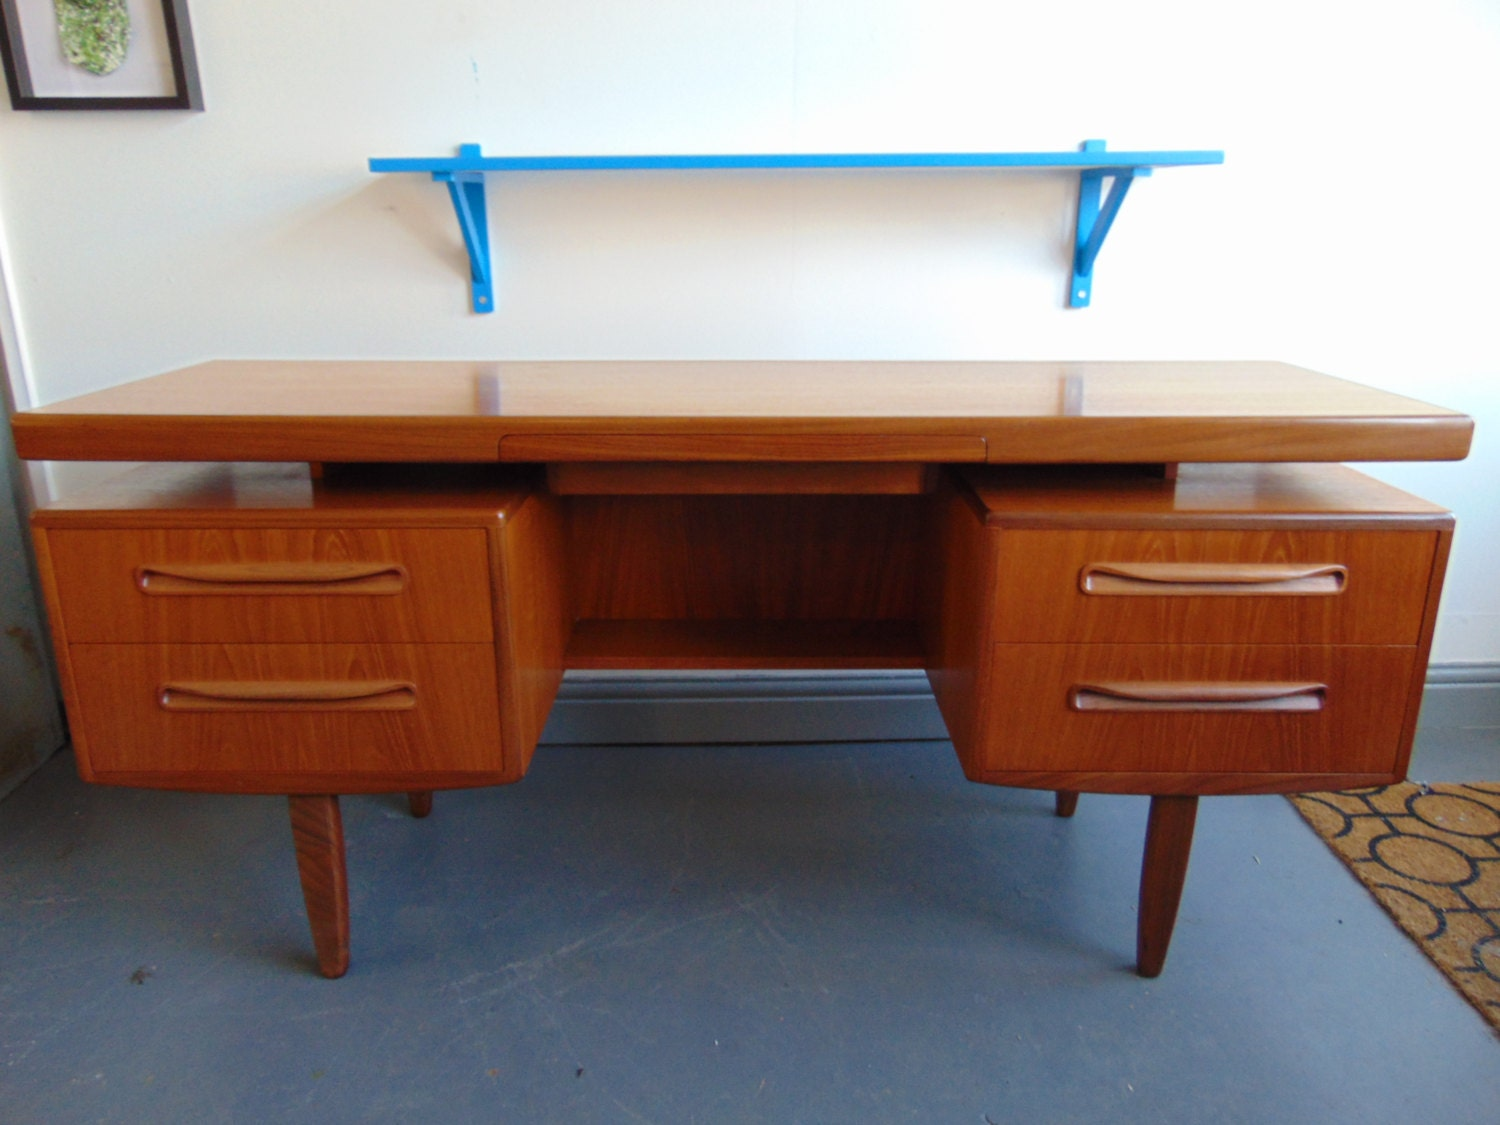 Teak and walnut floating desk by g plan by kingdomfurnishings for Floating desk for sale